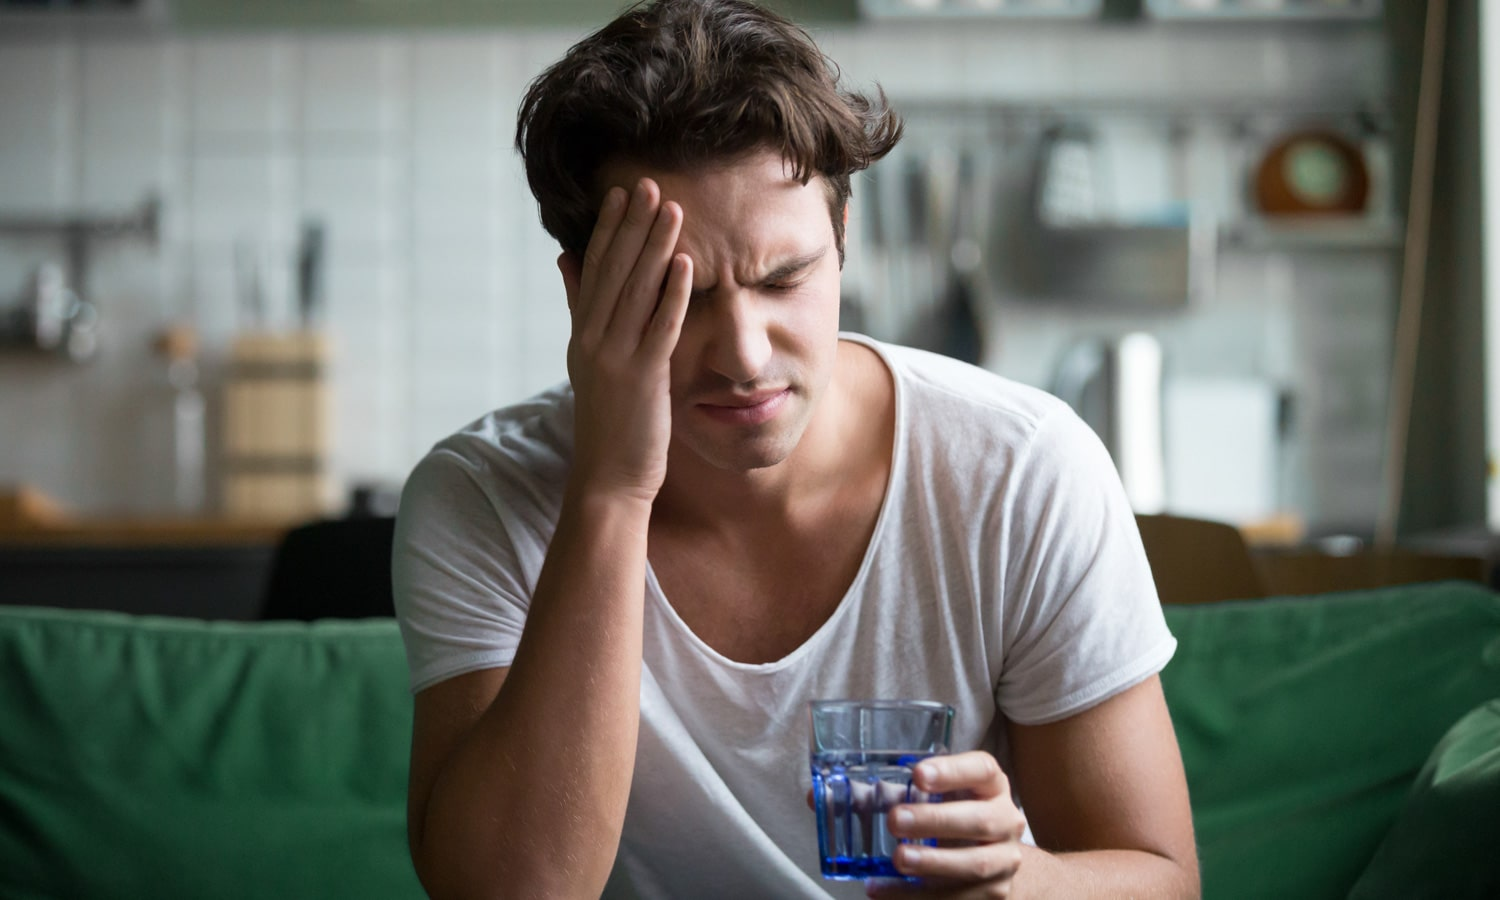 5 Ways To Beat A Hangover That Actually Work